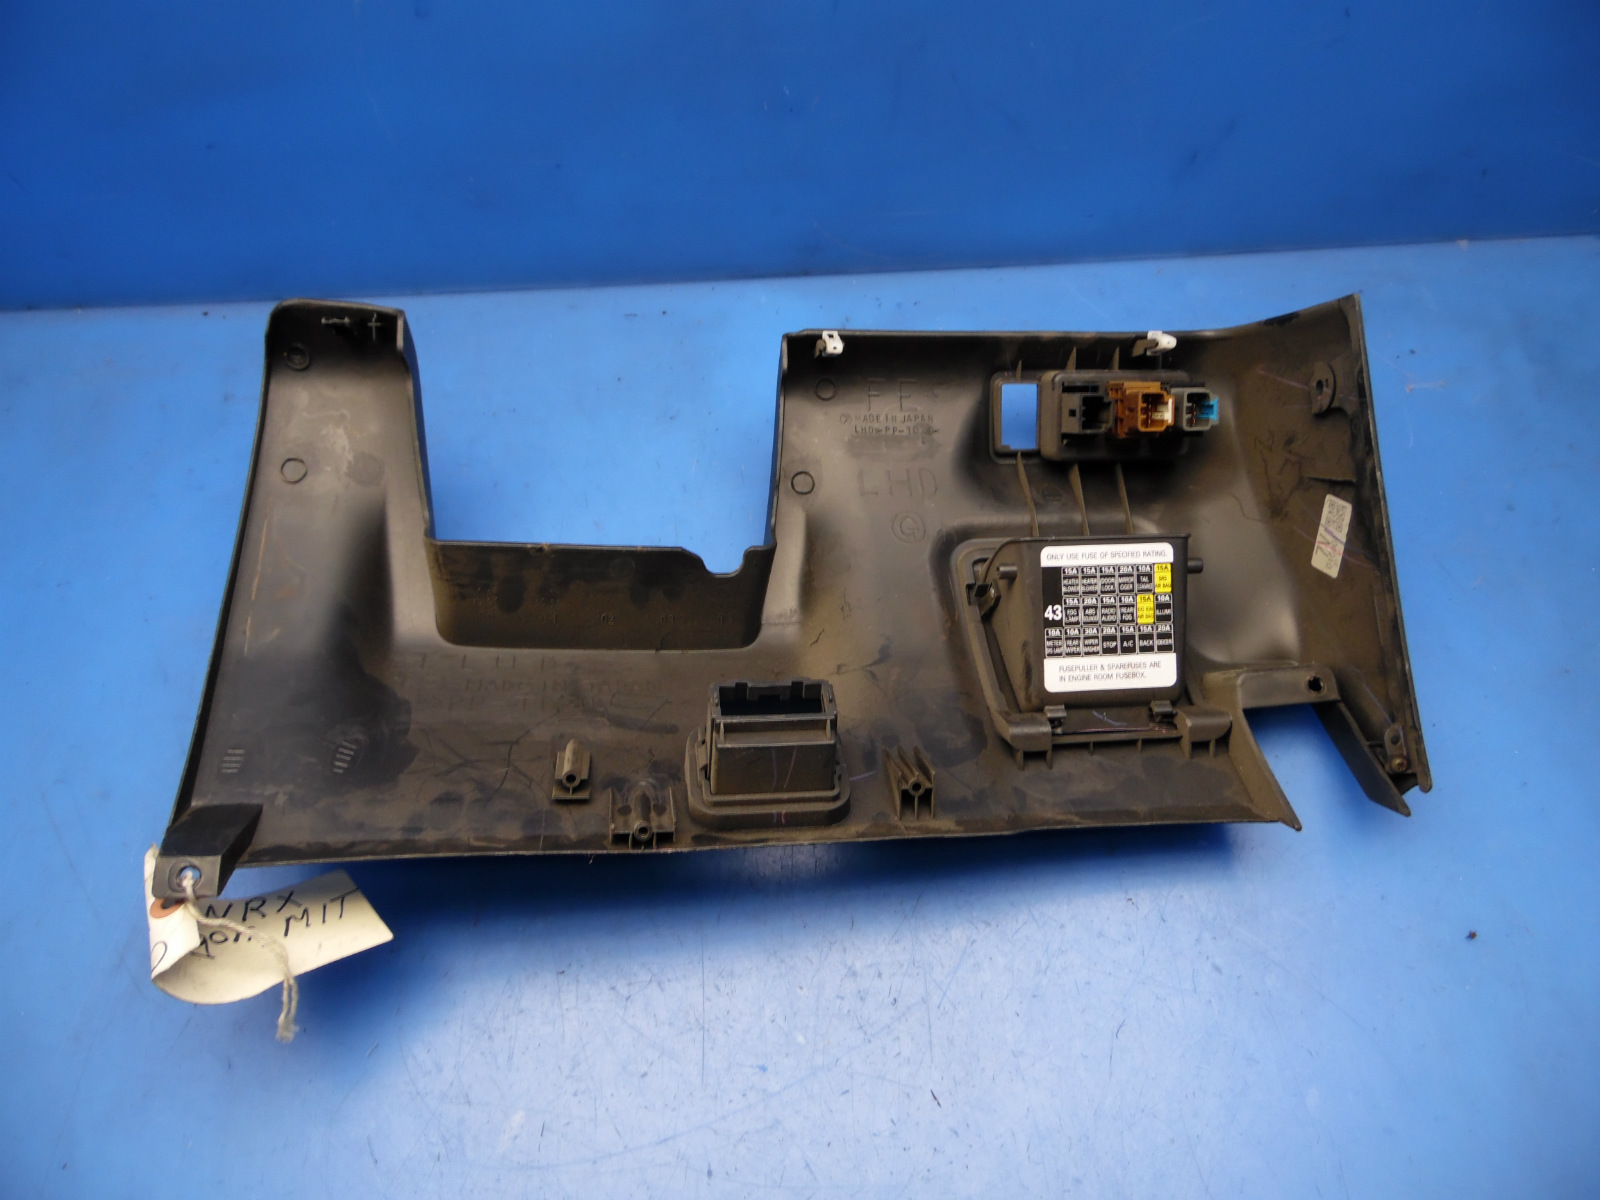 02 05 Wrx Impreza Oem Under Dash Cover Compartment Fuse Box Diagram Sti Carbon Flaws 3